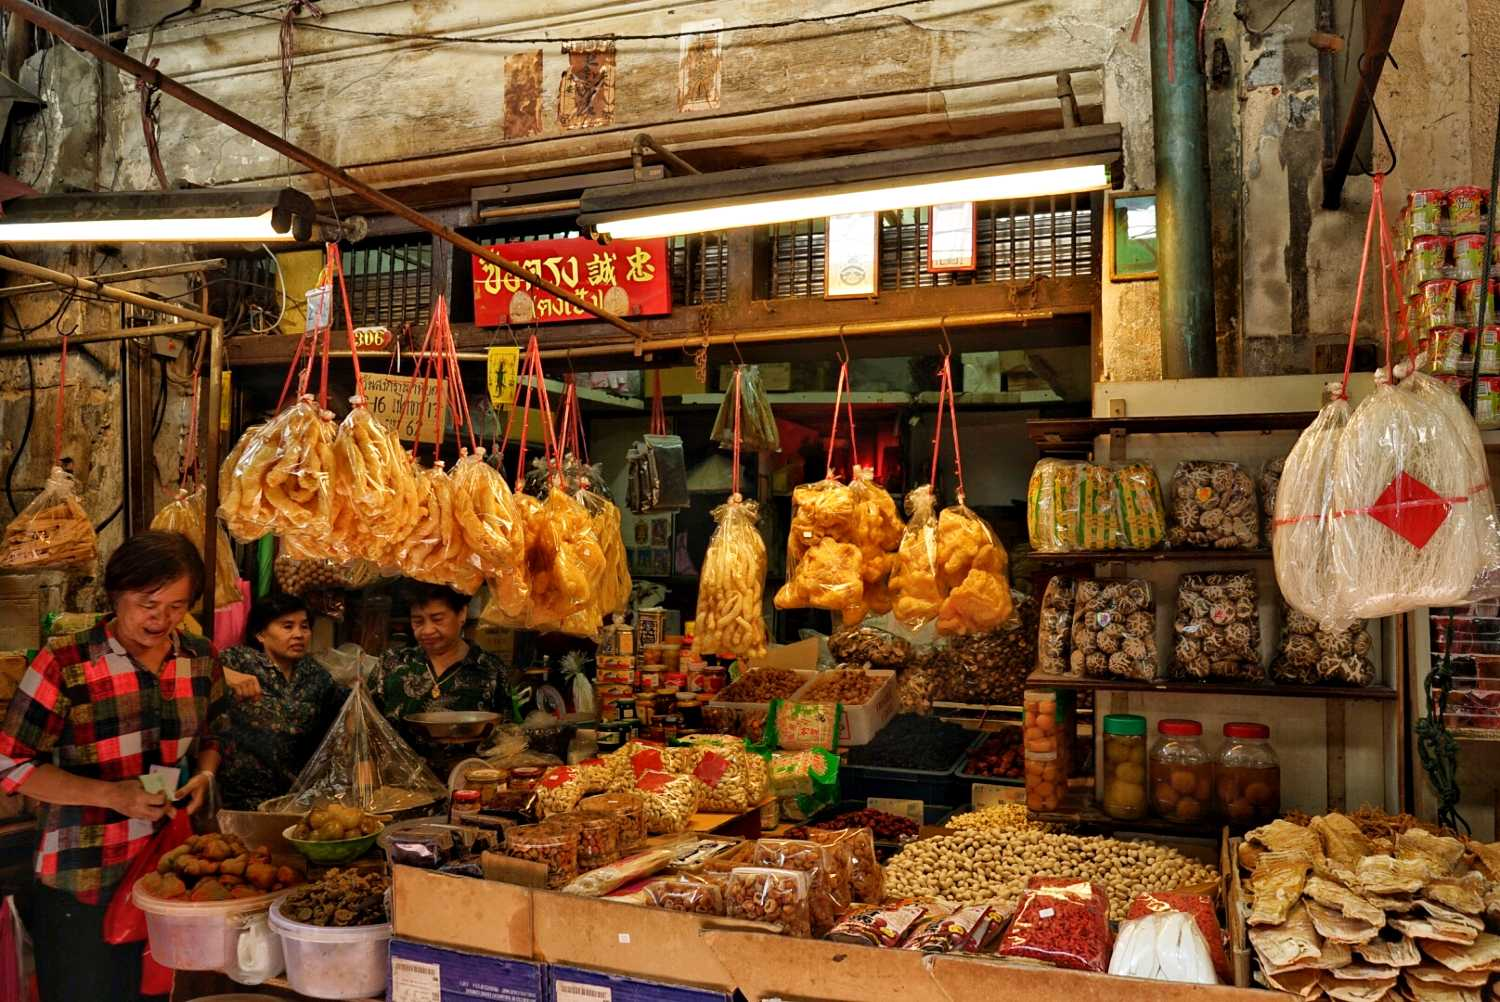 Marktkraam in Chinatown, Yaowarat Road in Bangkok